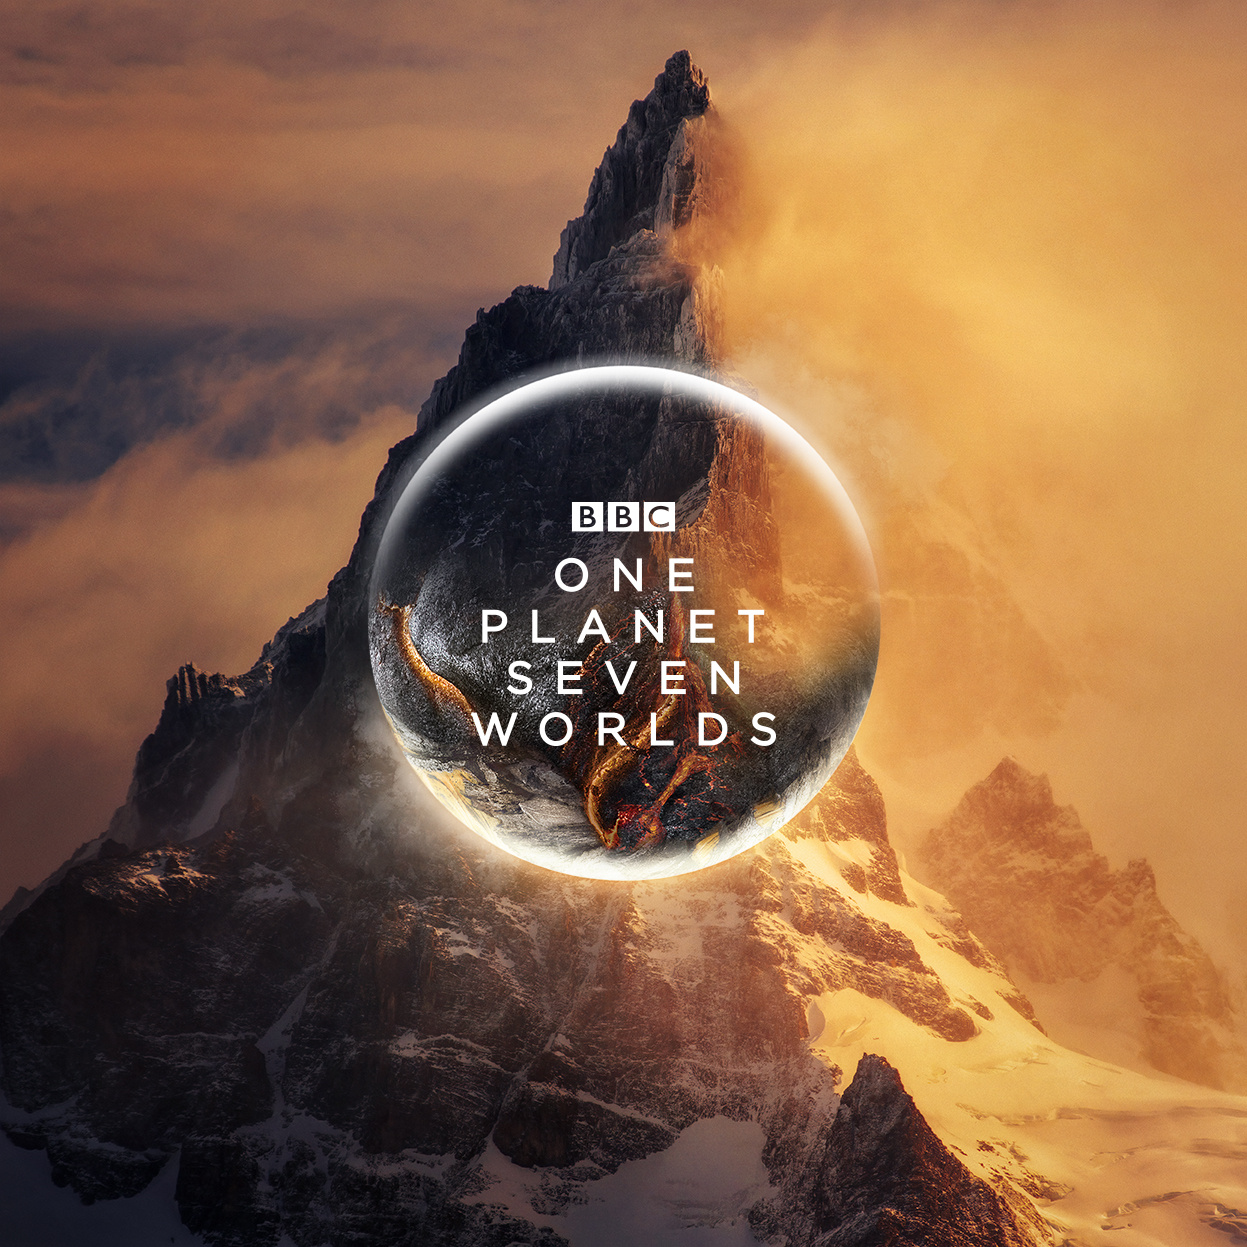 Thumbnail for One Planets 7 worlds event